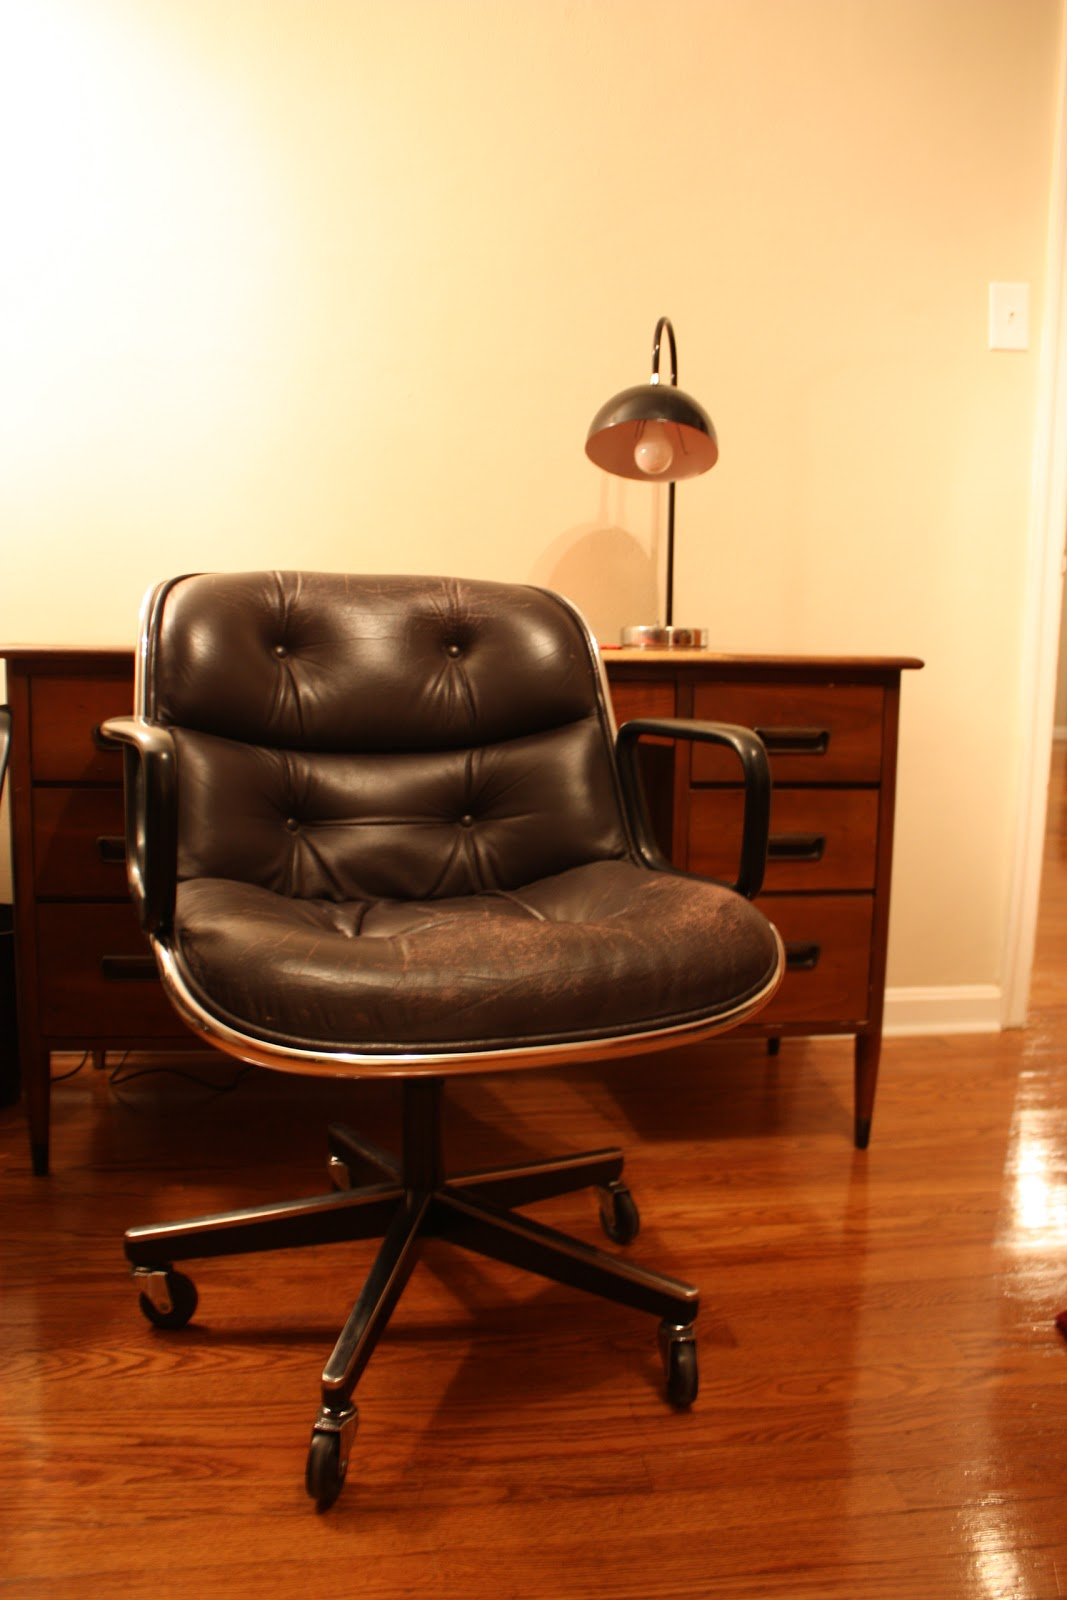 Knoll life chair geek -  Yes That Is A Snuggie Resting Atop That Knoll Pollock